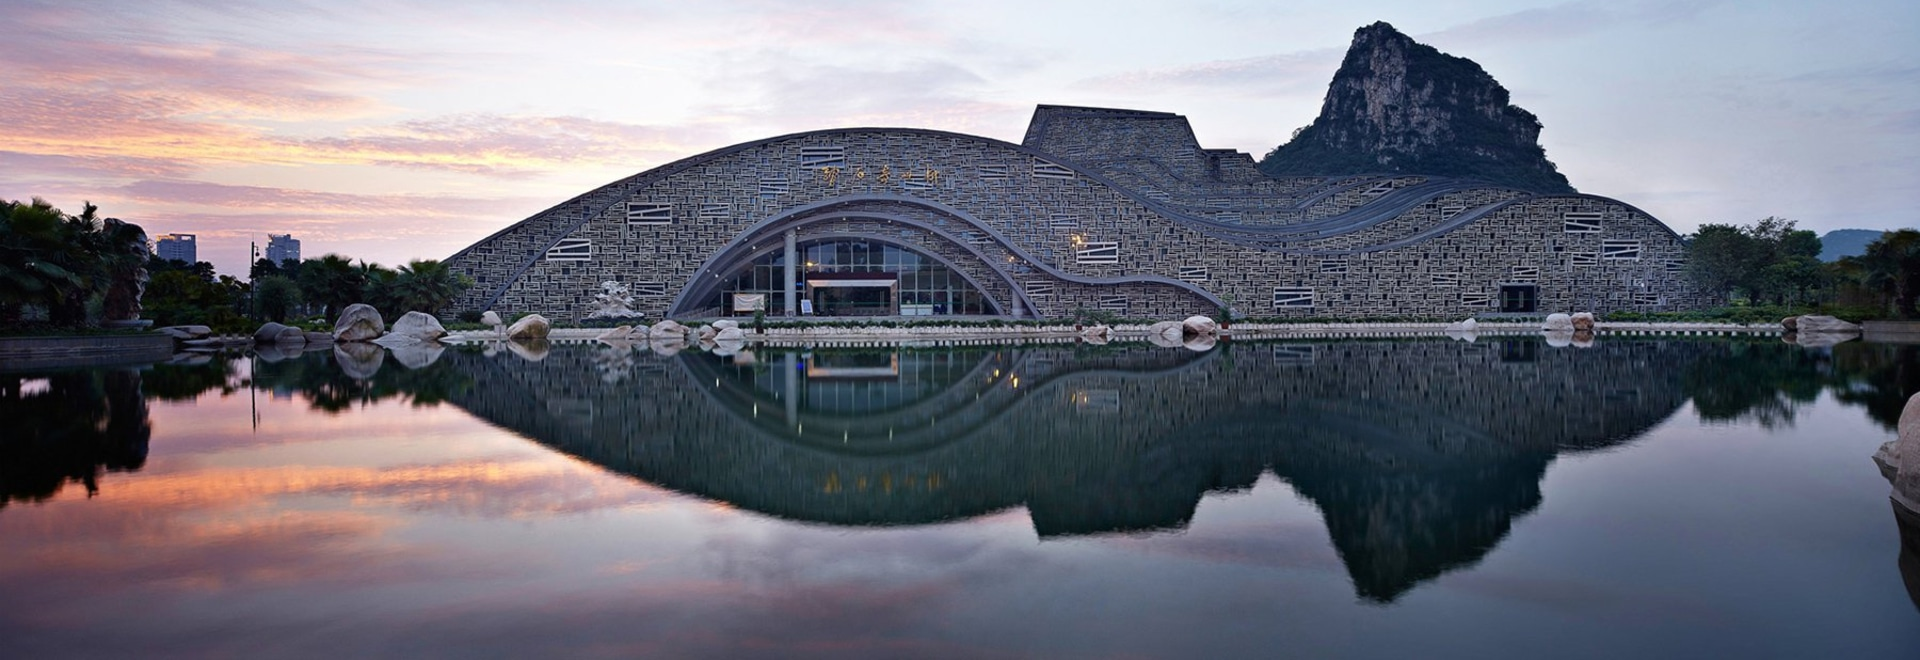 This sculptural hall in china mimics topography and movement